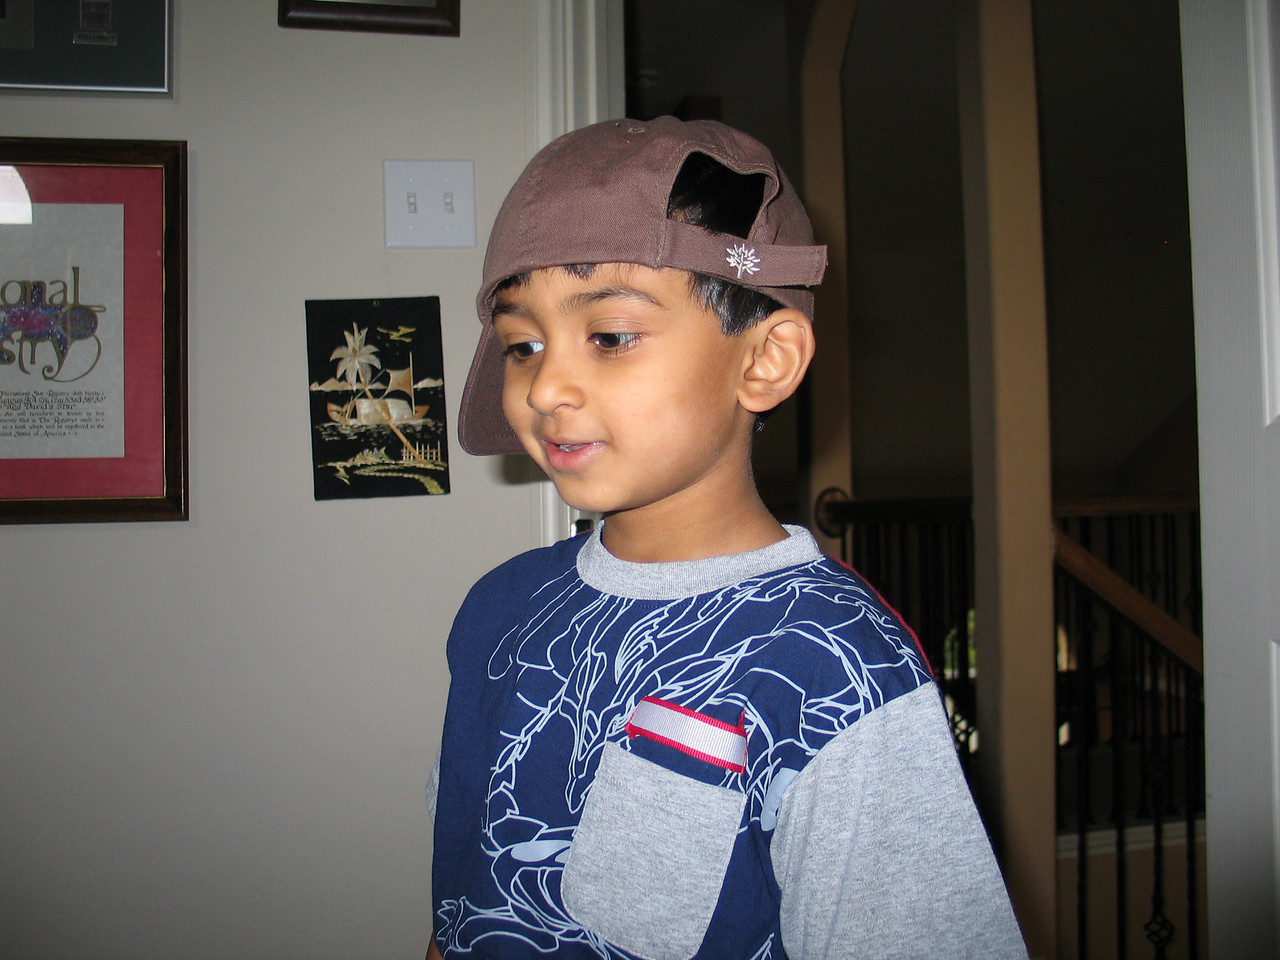 Rithik at home, sporting his b-boy cap.  Just getting ready to leave!